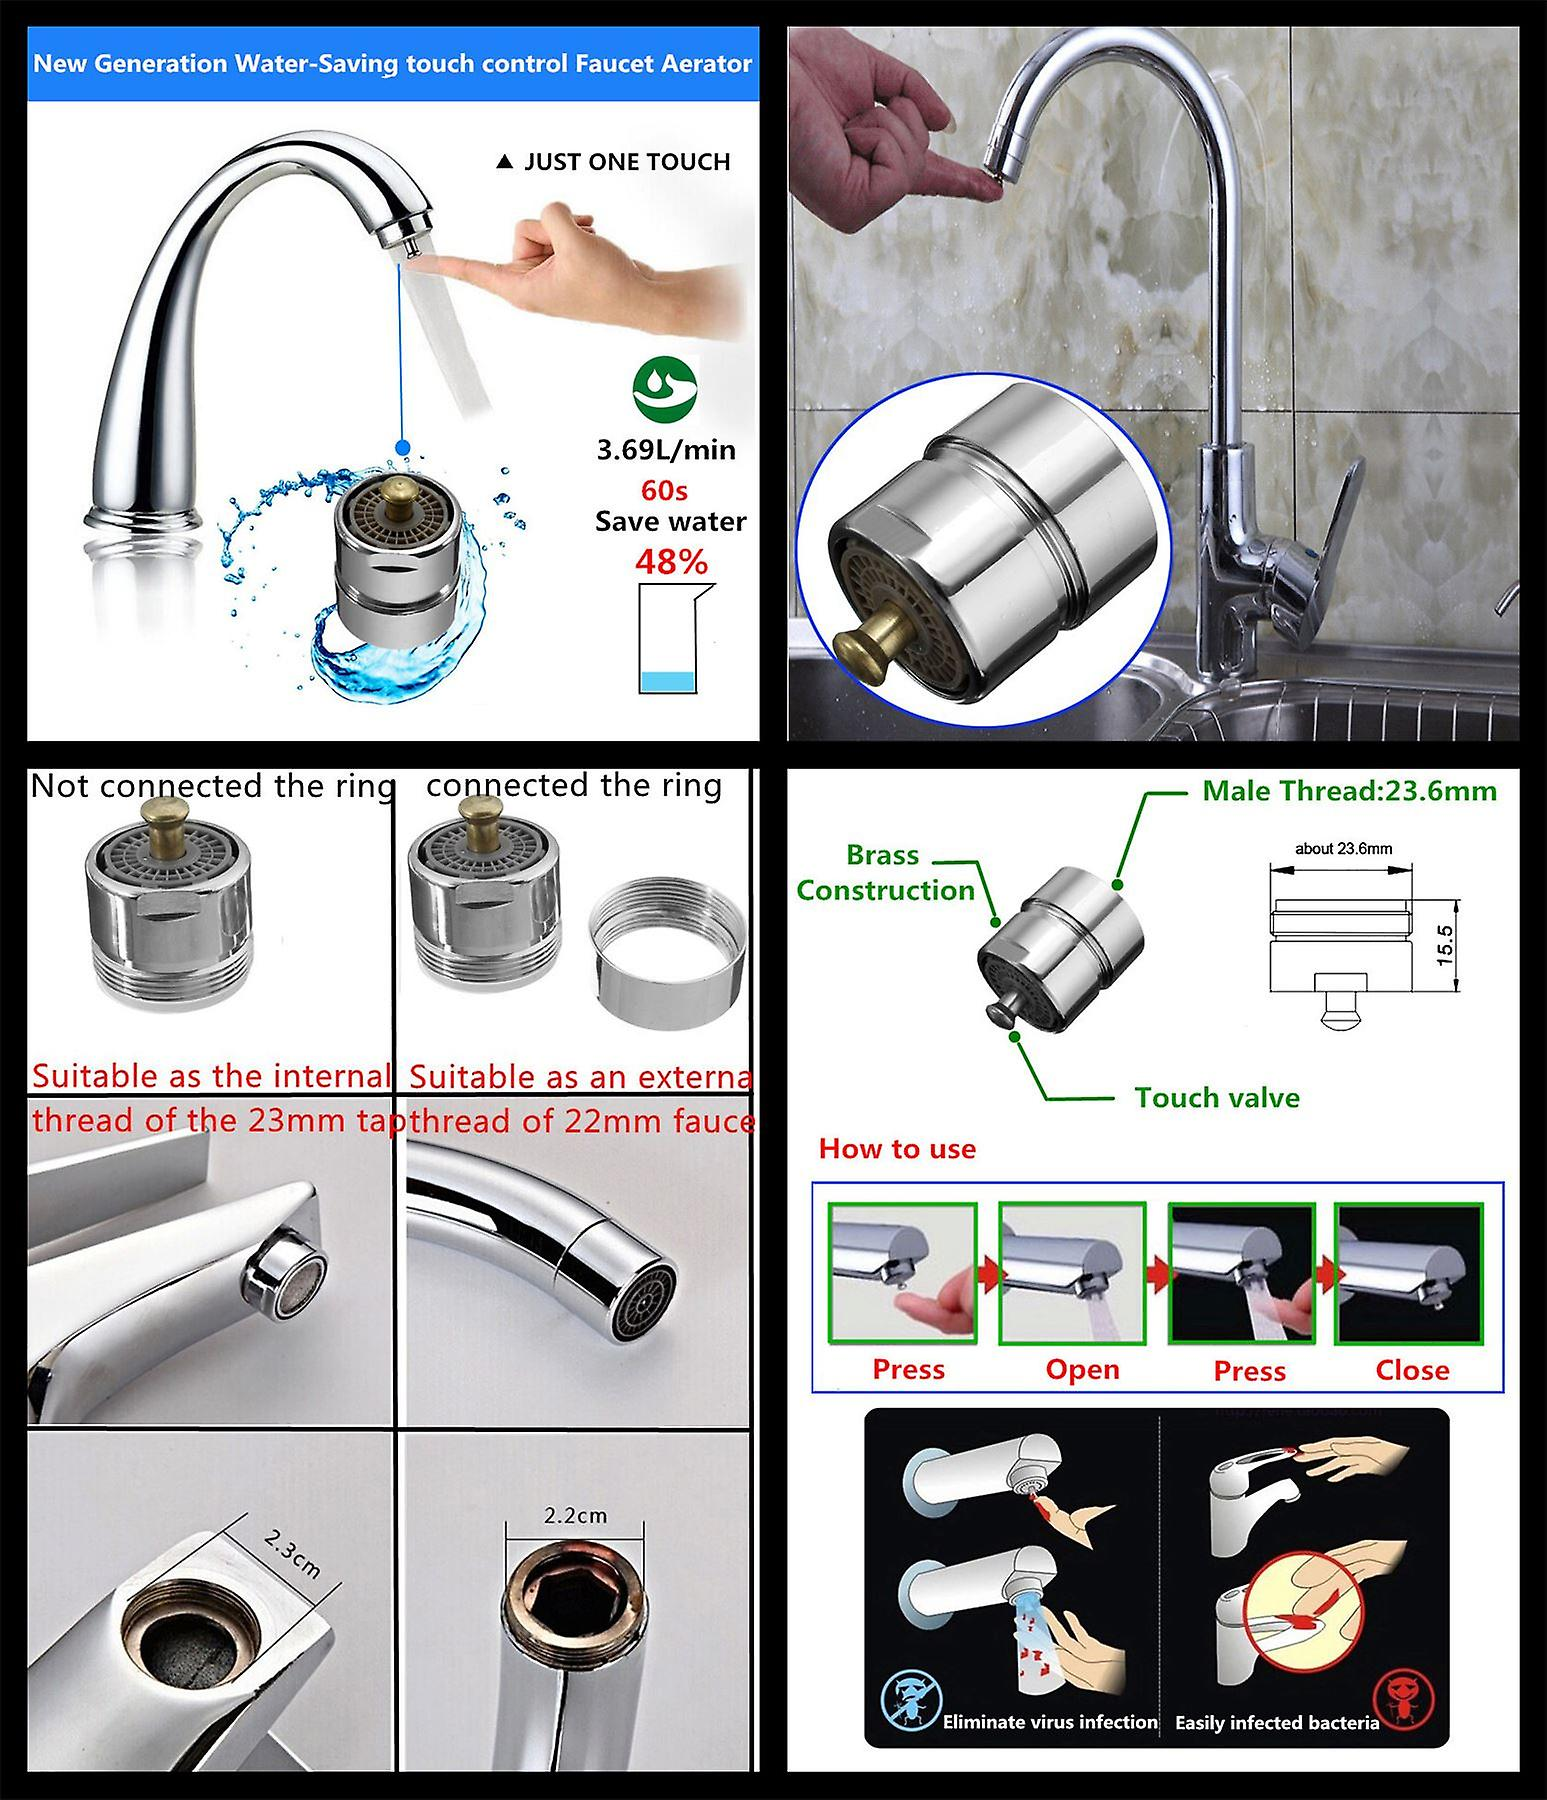 One Touch Control Faucet Tap Aerator Water Saving 24mm Male/22mm Female 4l/min